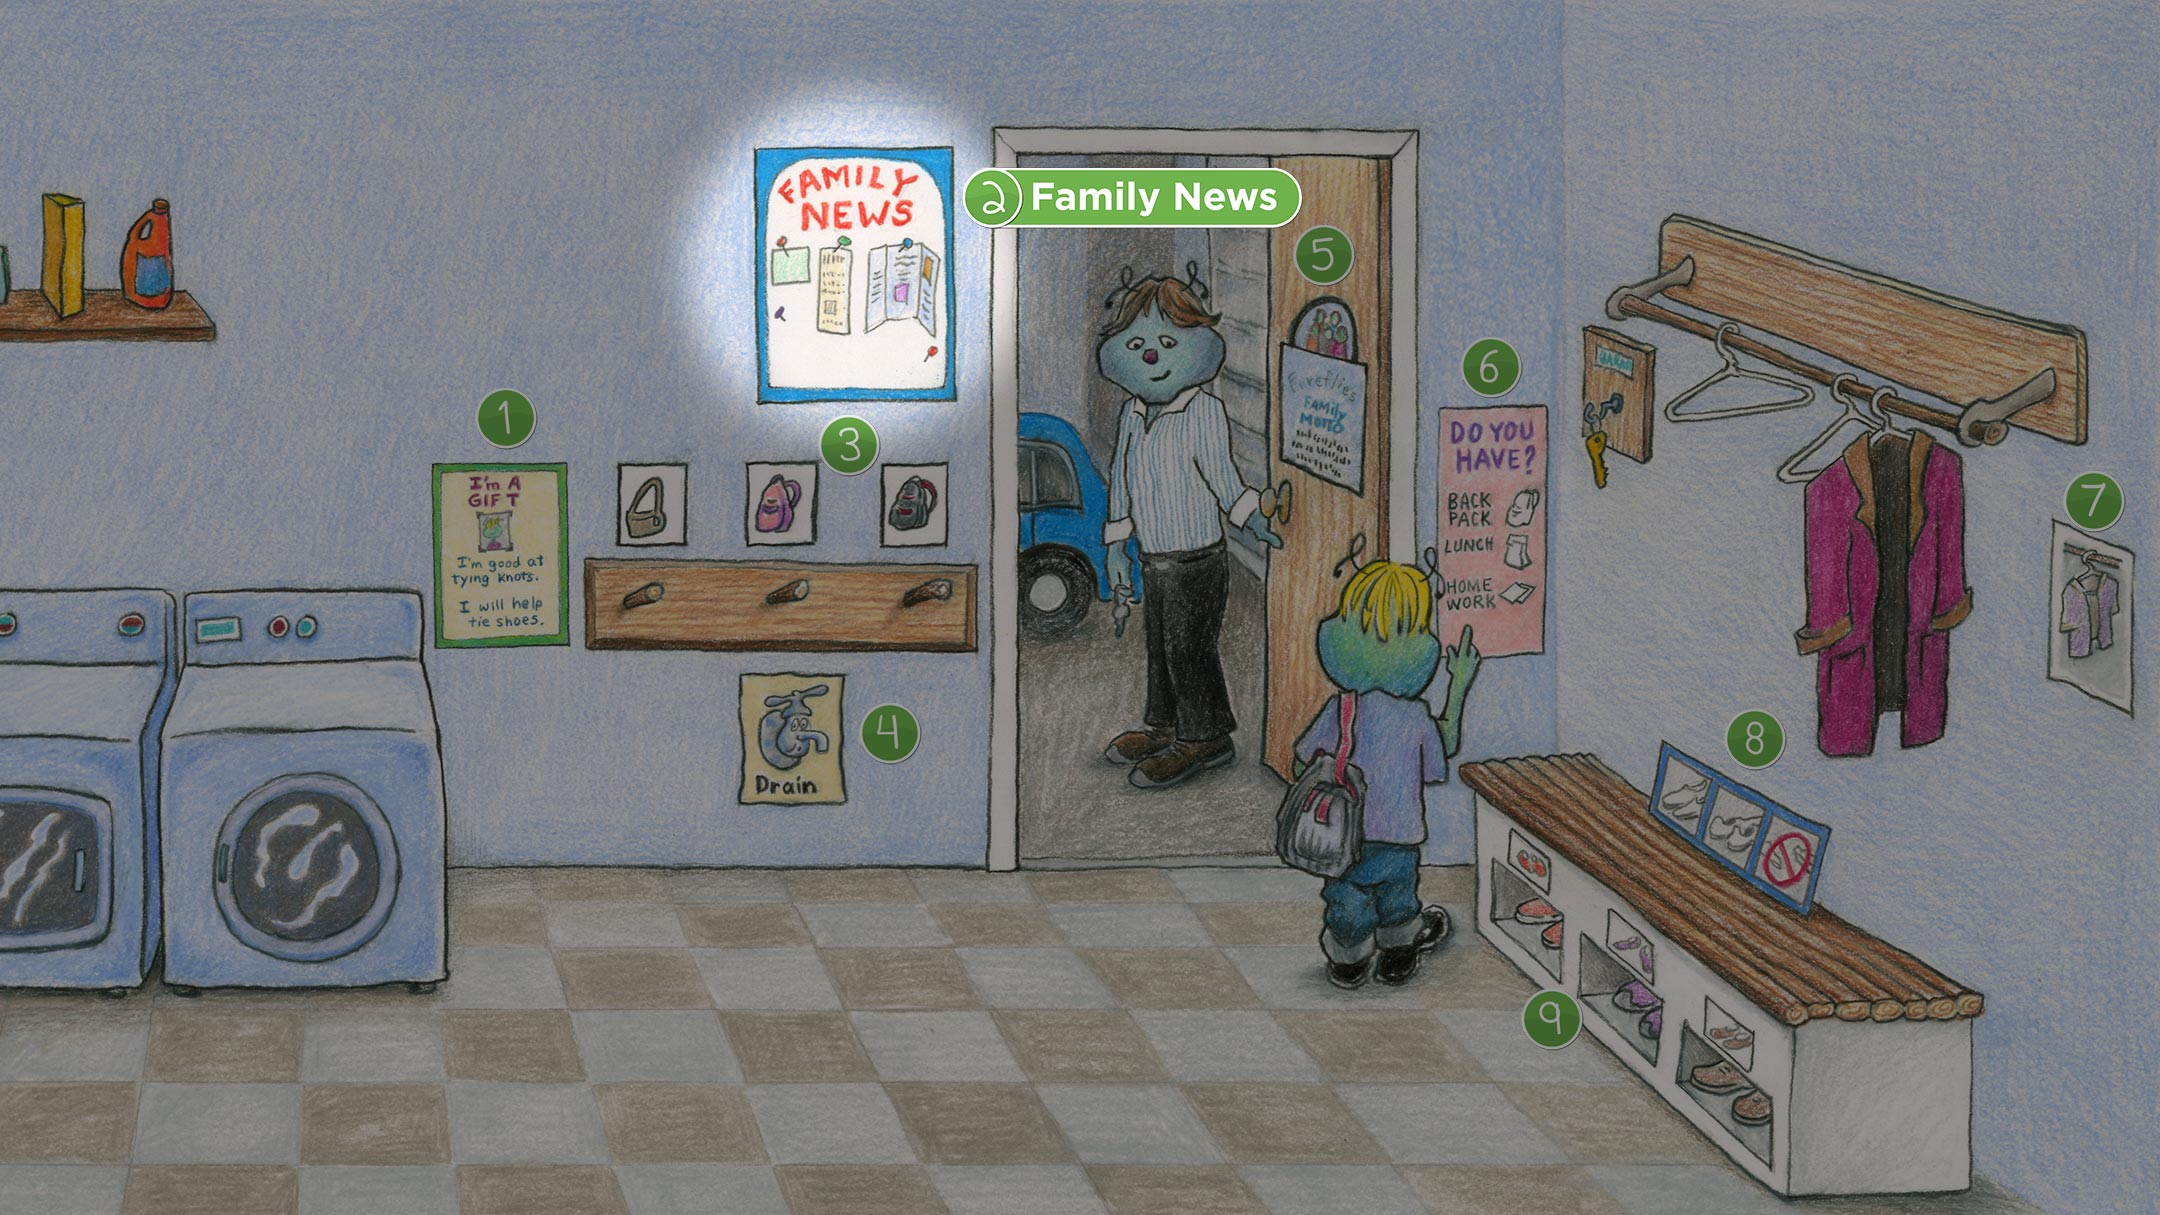 Laundry Room: Family News